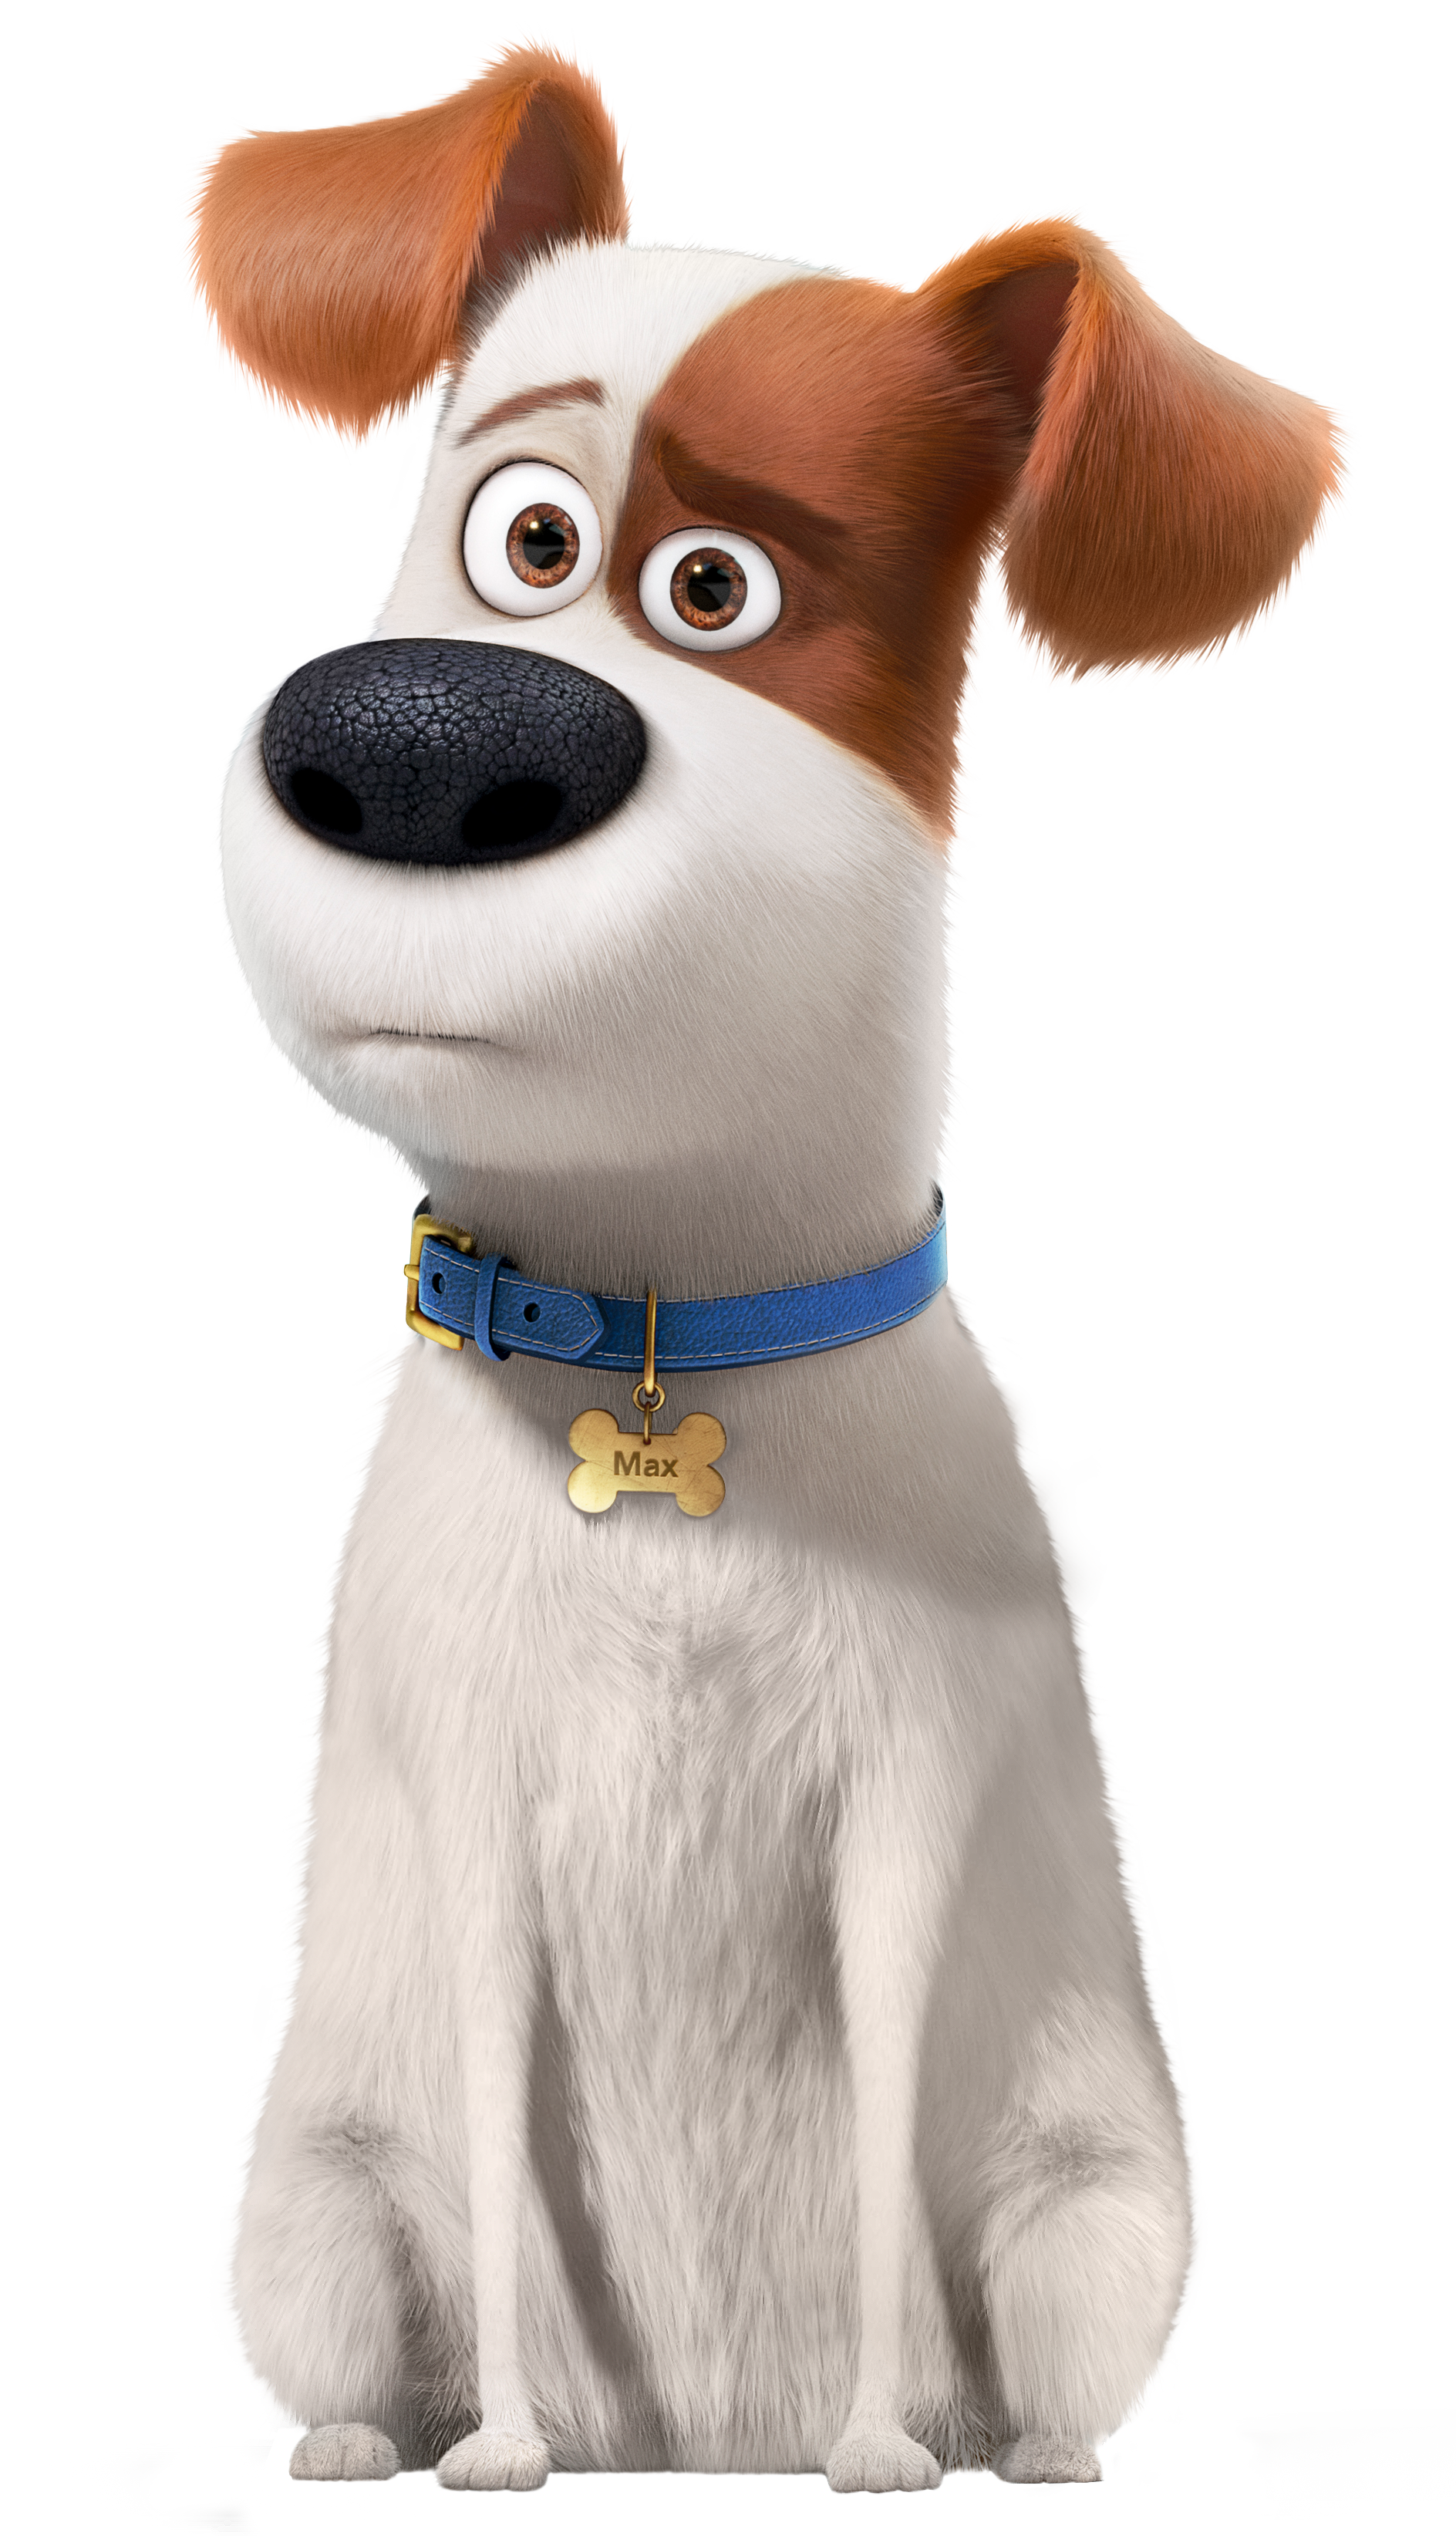 The Secret Life of Pets Max Transparent PNG Image.